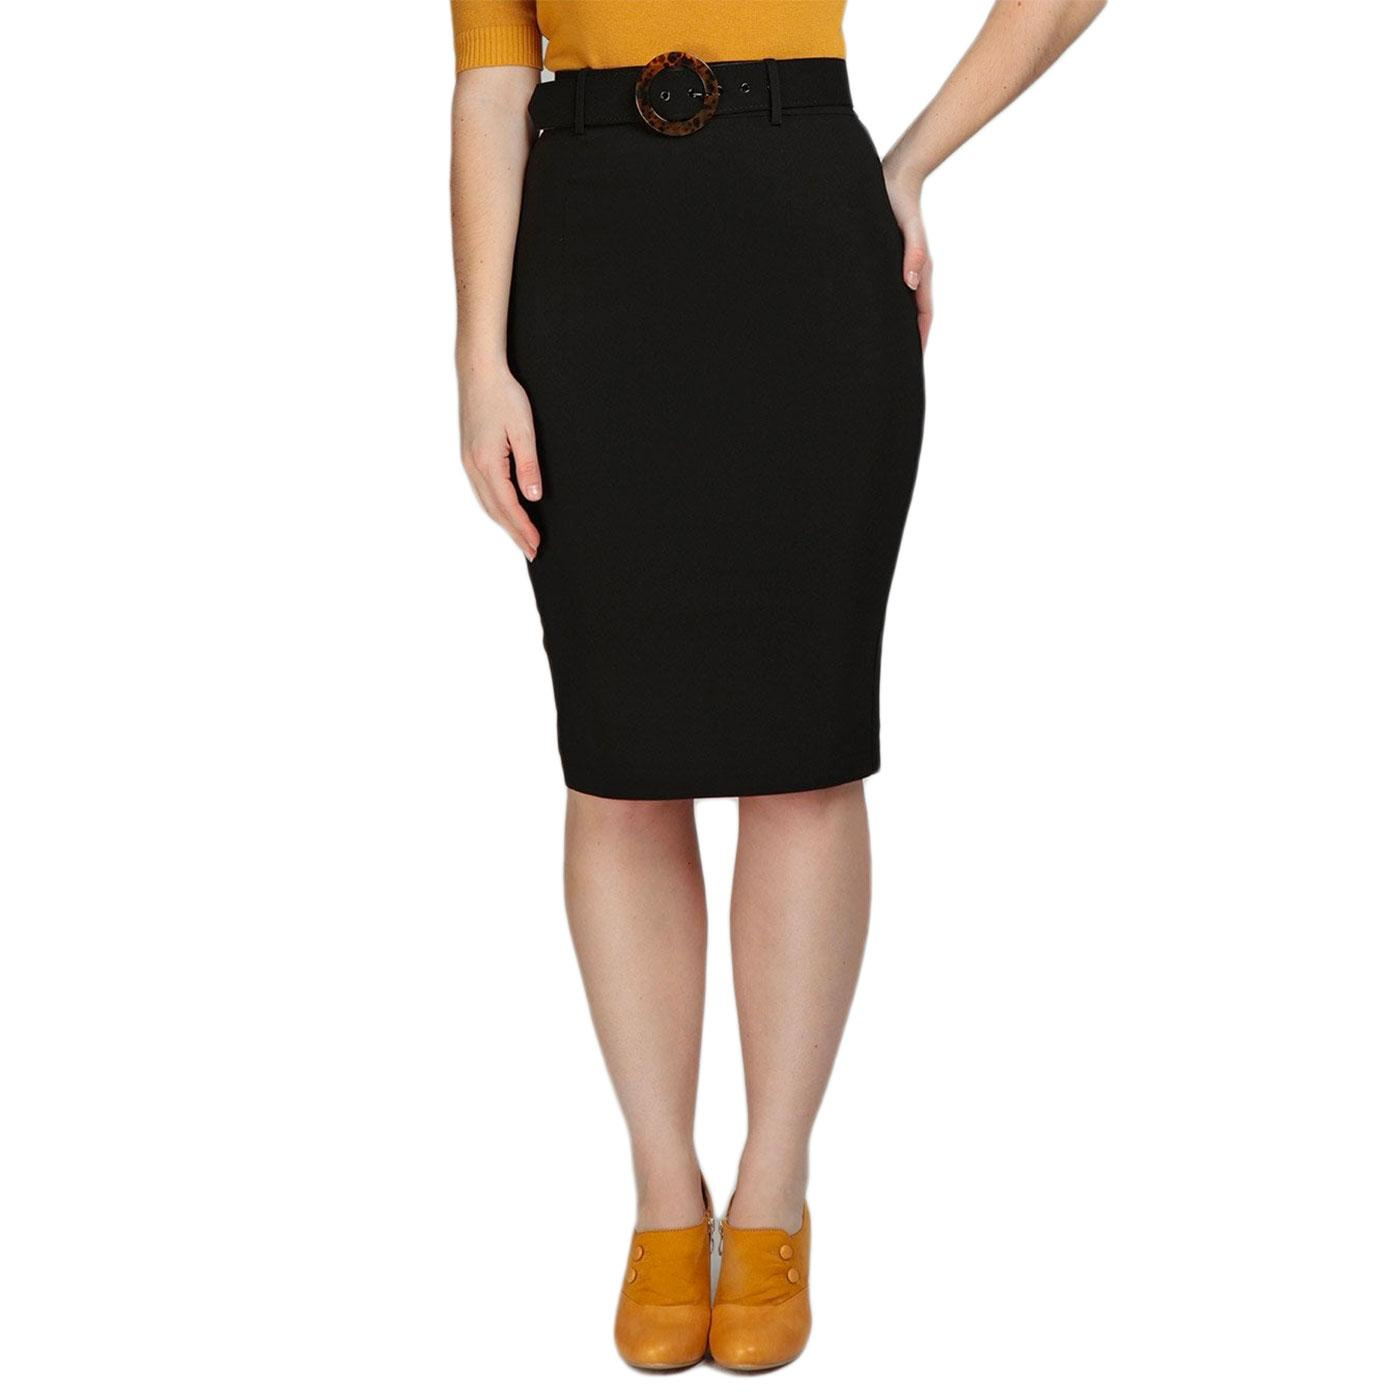 Madelyn COLLECTIF Retro 50s Vintage Pencil Skirt